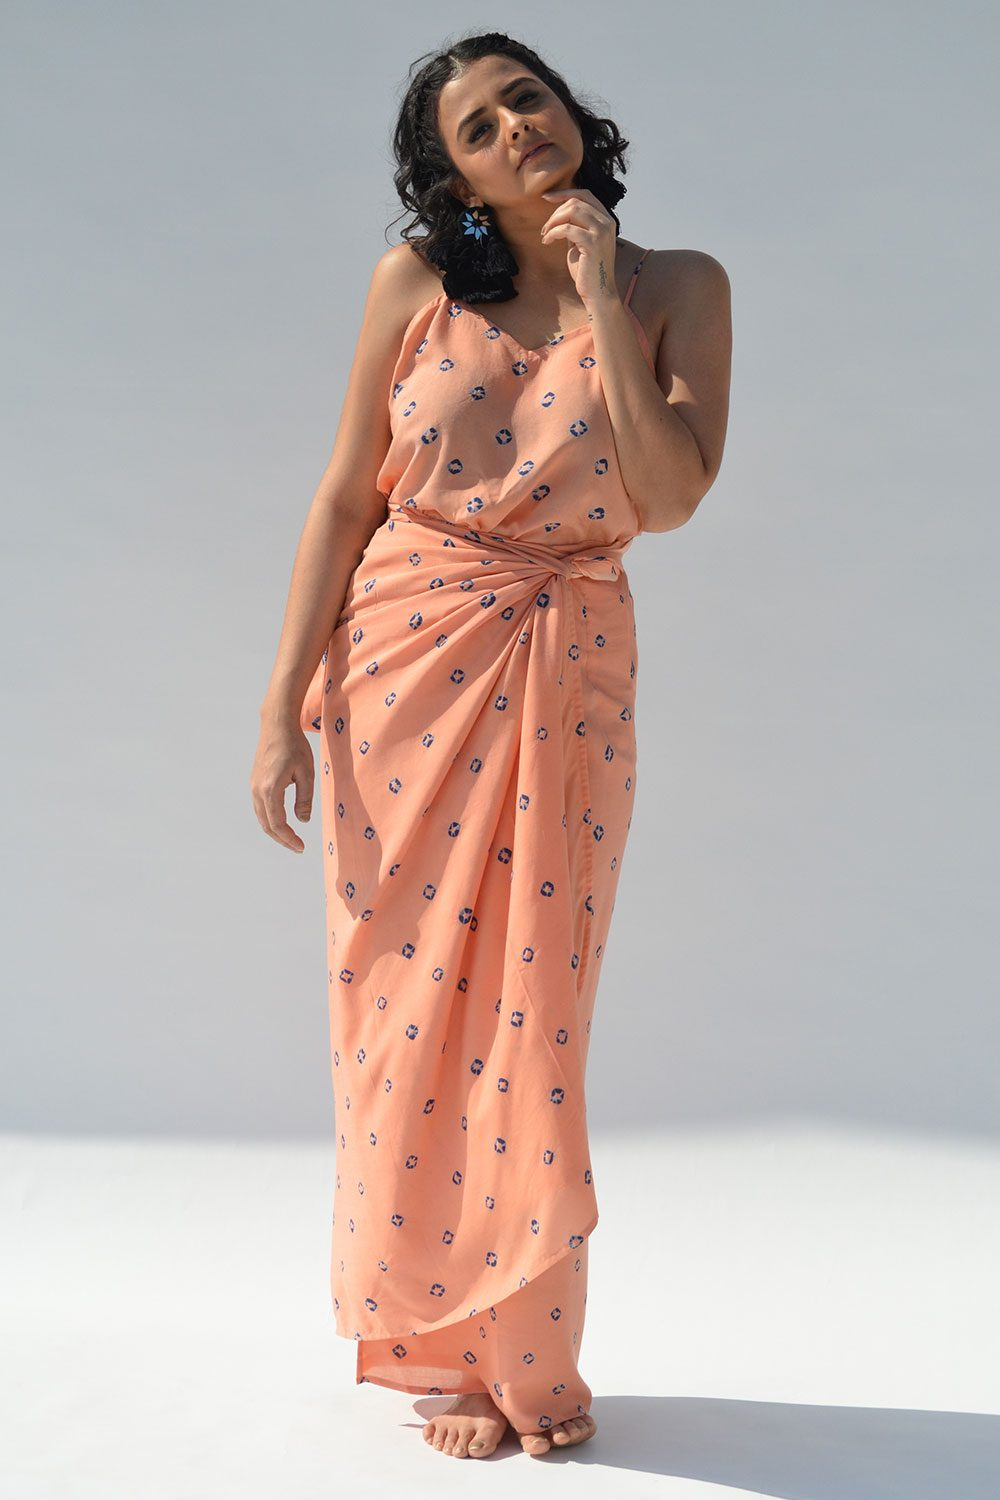 Peach Bandhej Spaghetti Wrap dress - Riviera Closet